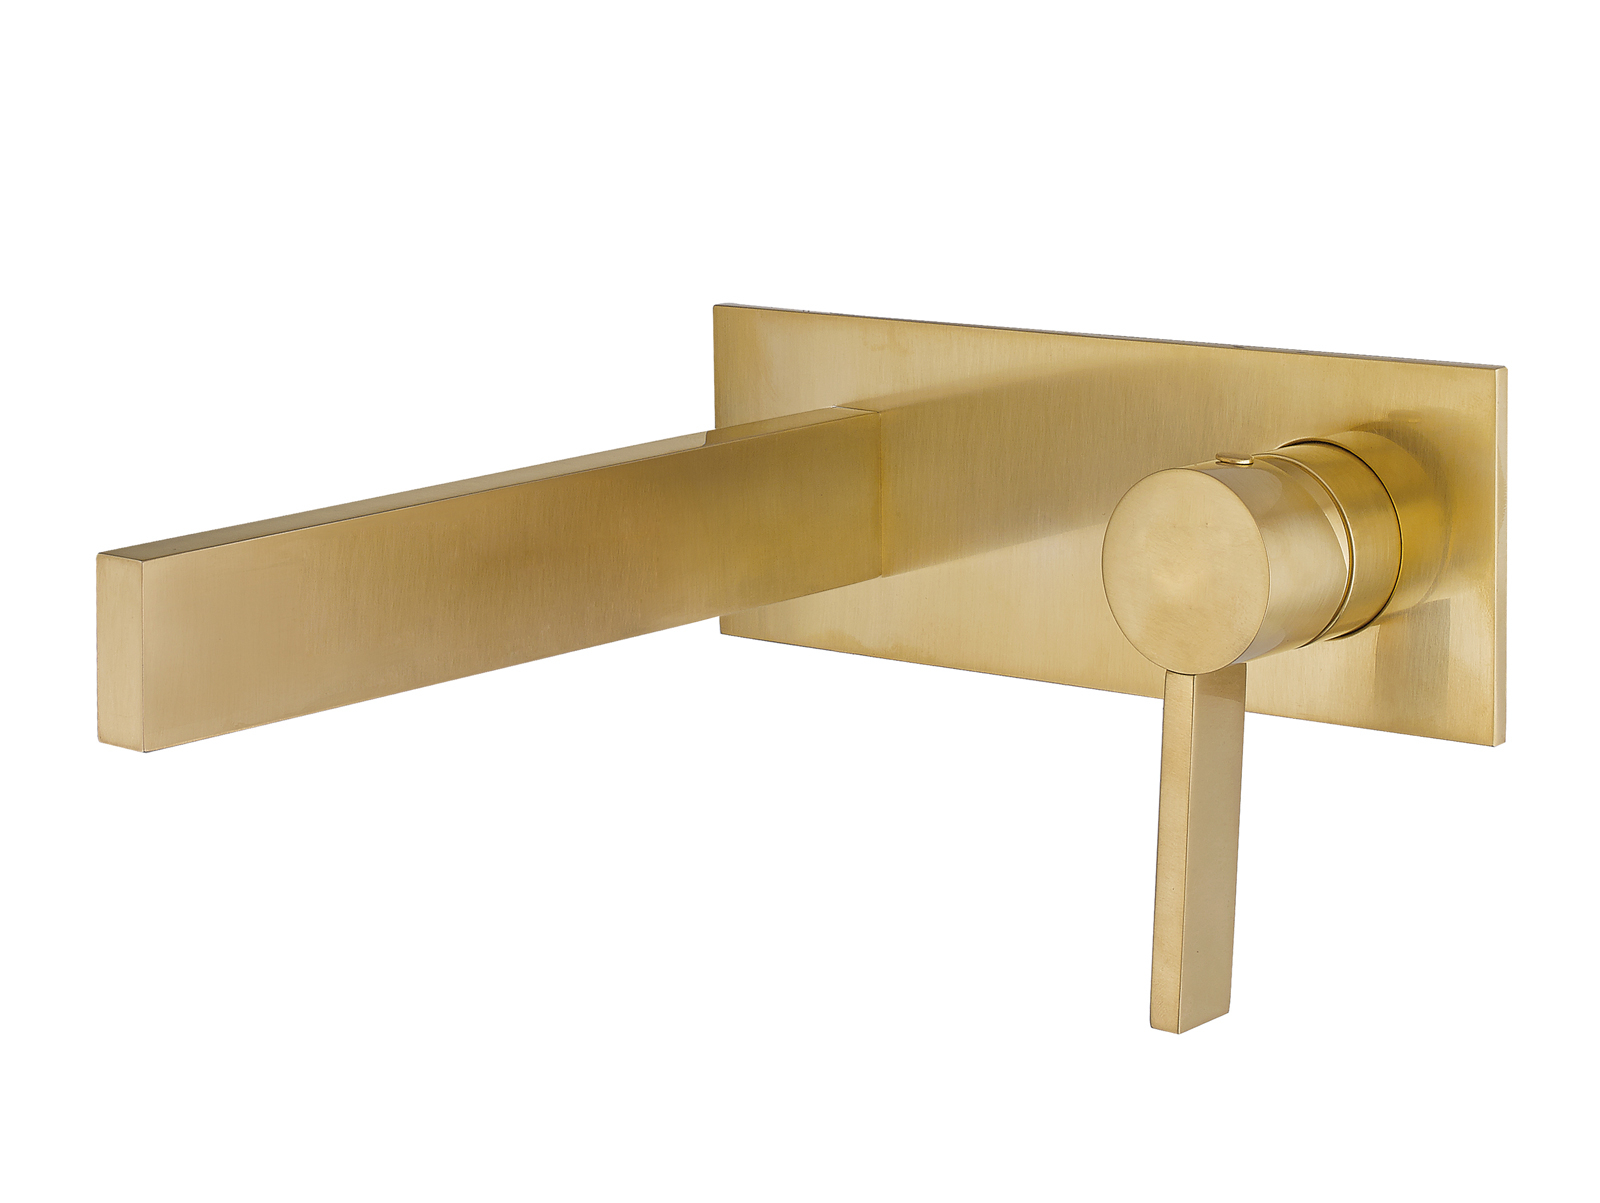 Fabulous Luxury Wall Mount Bathroom Faucet Caso Brushed Gold with regard to High Quality Gold Faucet Bathroom